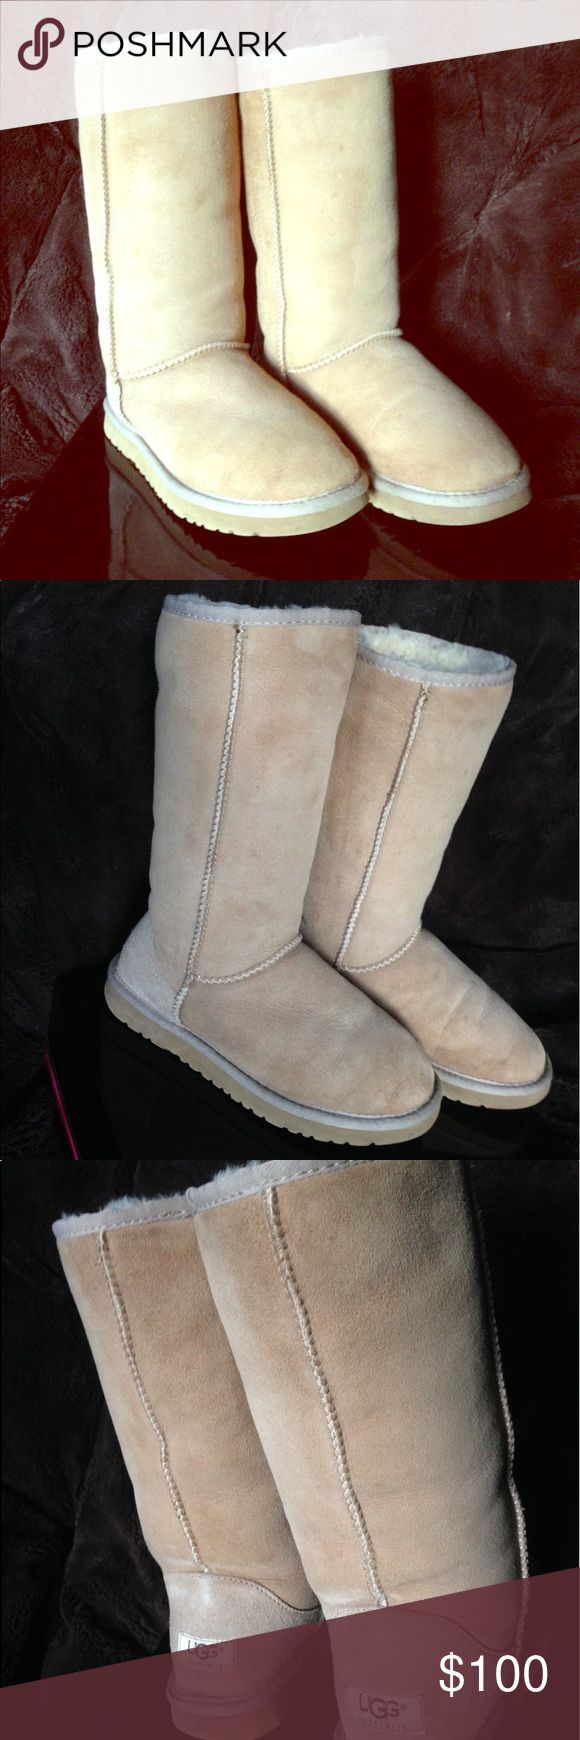 """Women's size 6 tall UGG boots in """"sand""""! EUC!!! Women's size 6 tall UGG boots in EXCELLENT condition! Worn only a handful of times; I forgot you needed to order a half size/1 size down from what you usually wear in shoes; and now they're too big on me 😞..lol. My loss is your gain!!! I've taken care of them with the """"UGG"""" kit; sheepskin protectant etc. Fur is still soft and fluffy! Only sign of any real wear is on the back right heel; some discoloration (see pics). Other than that they…"""